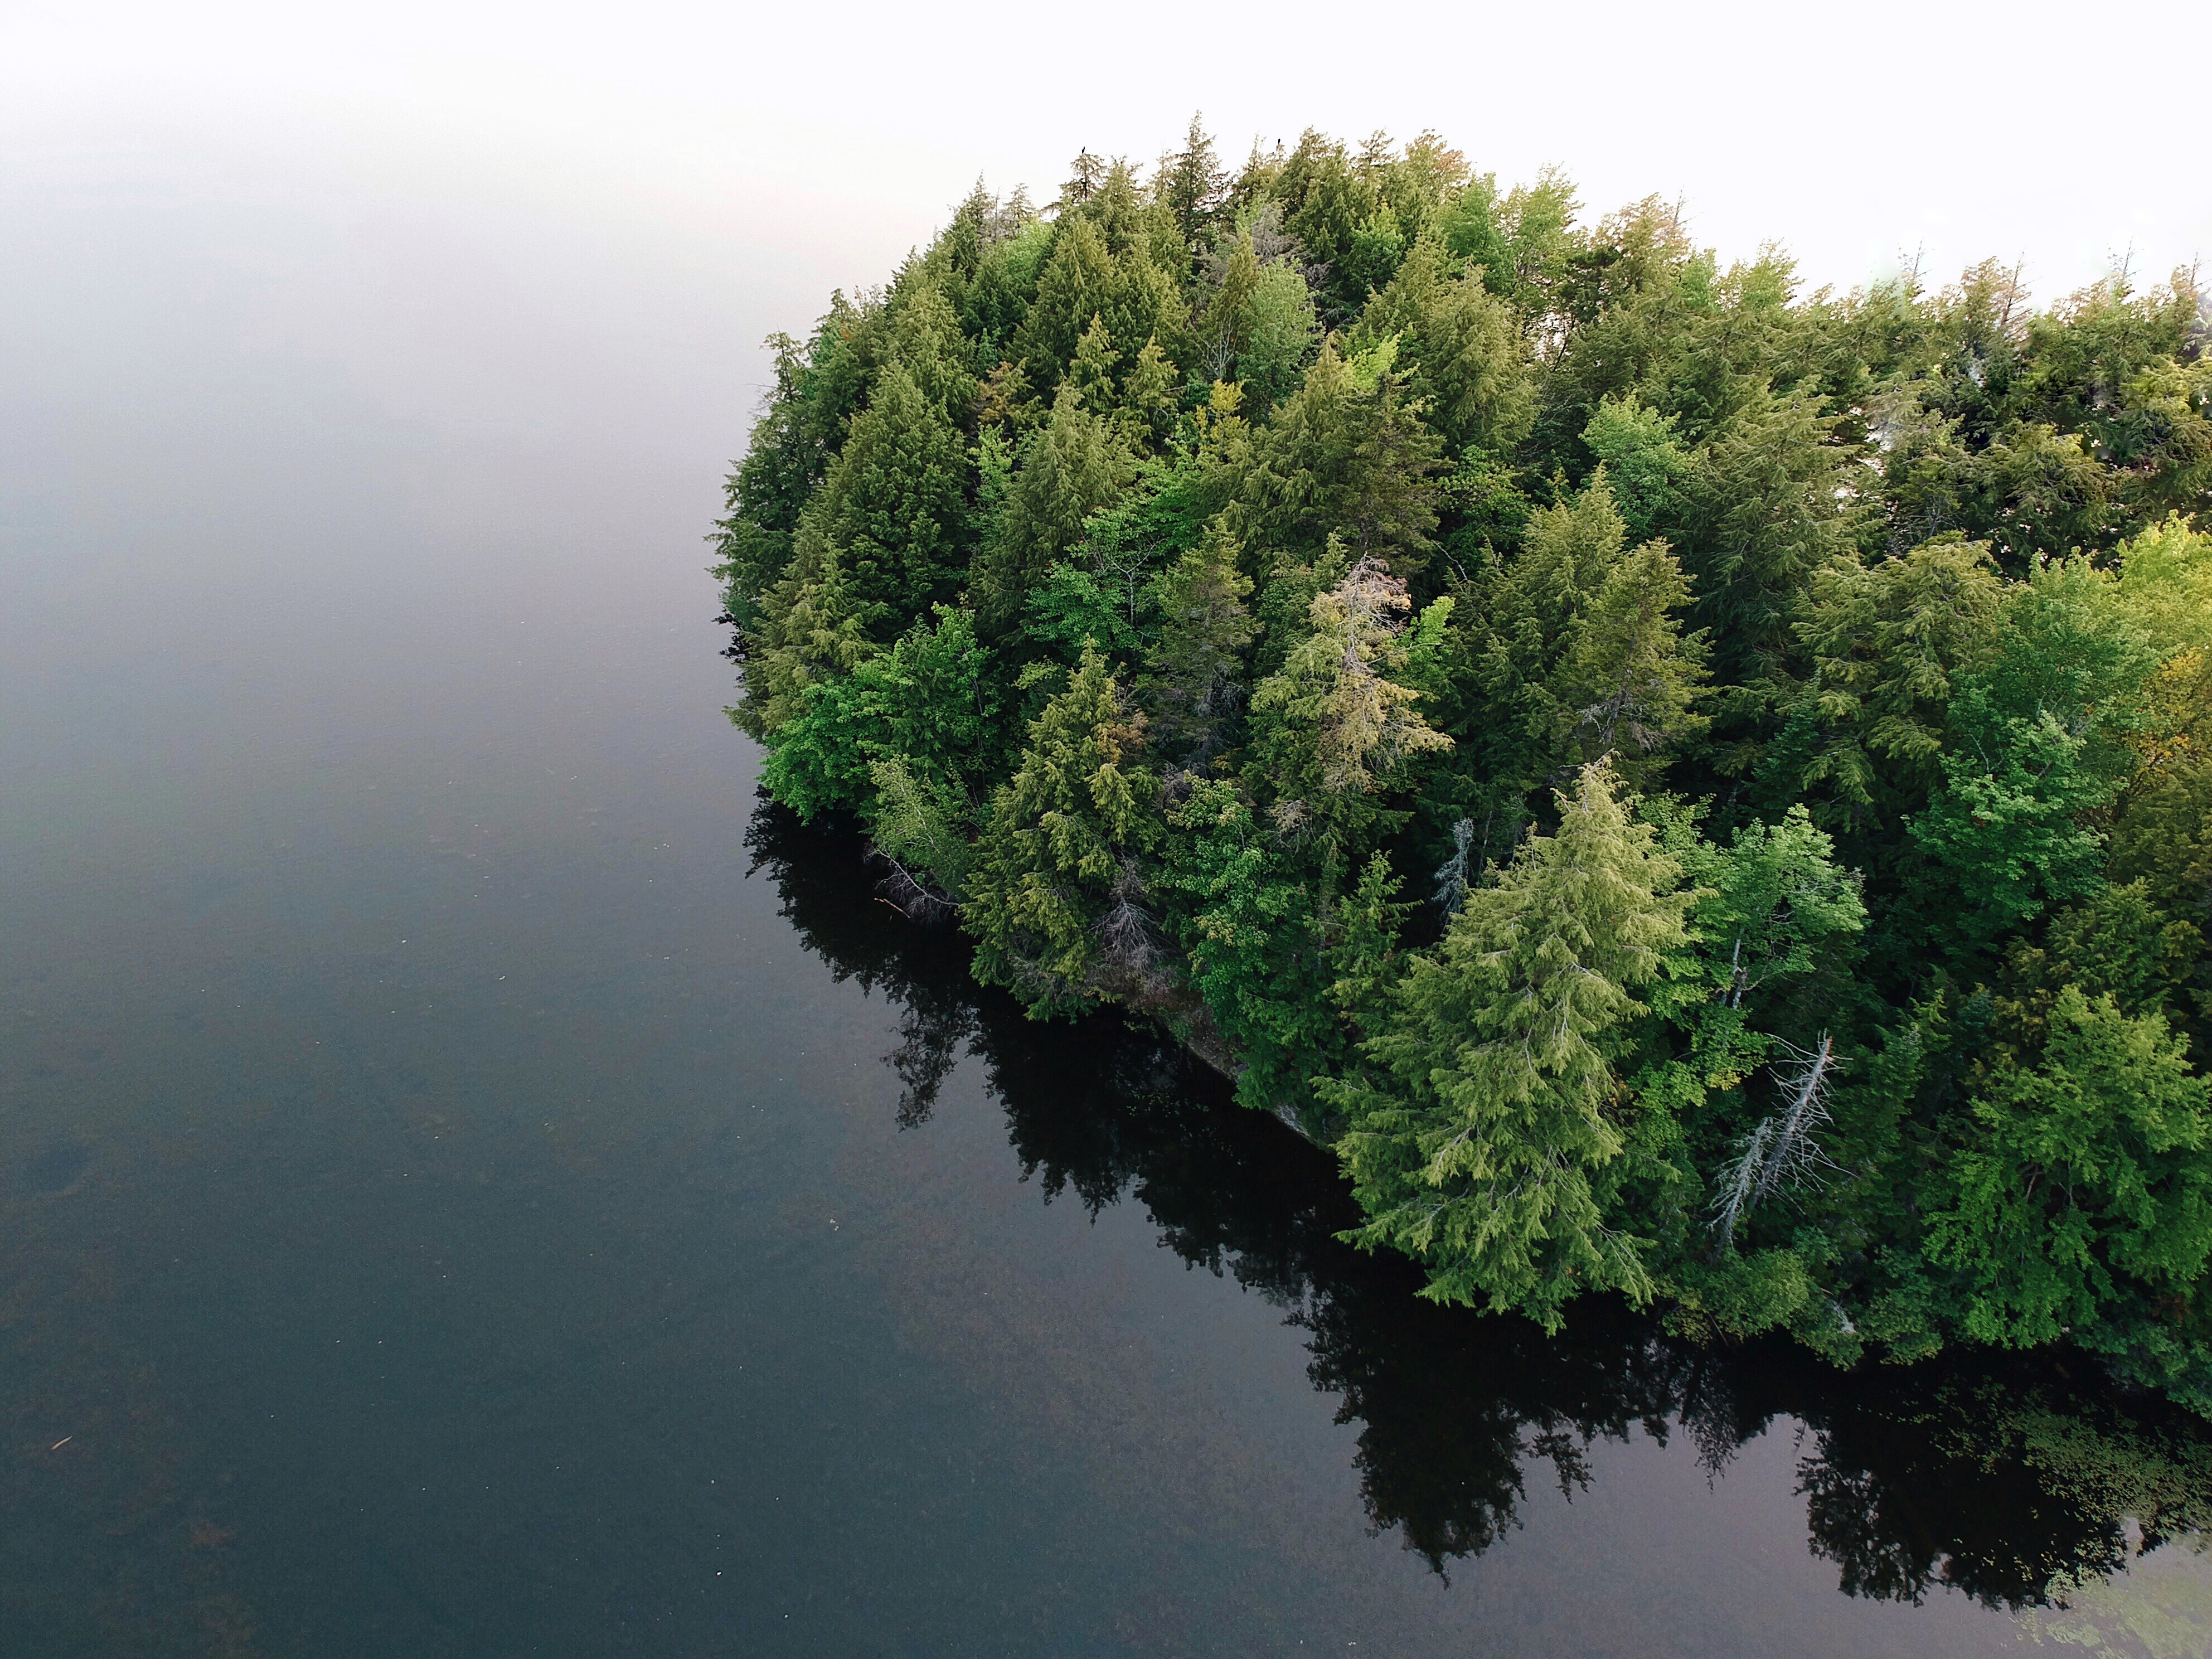 aerial photography of island surrounded by body of water